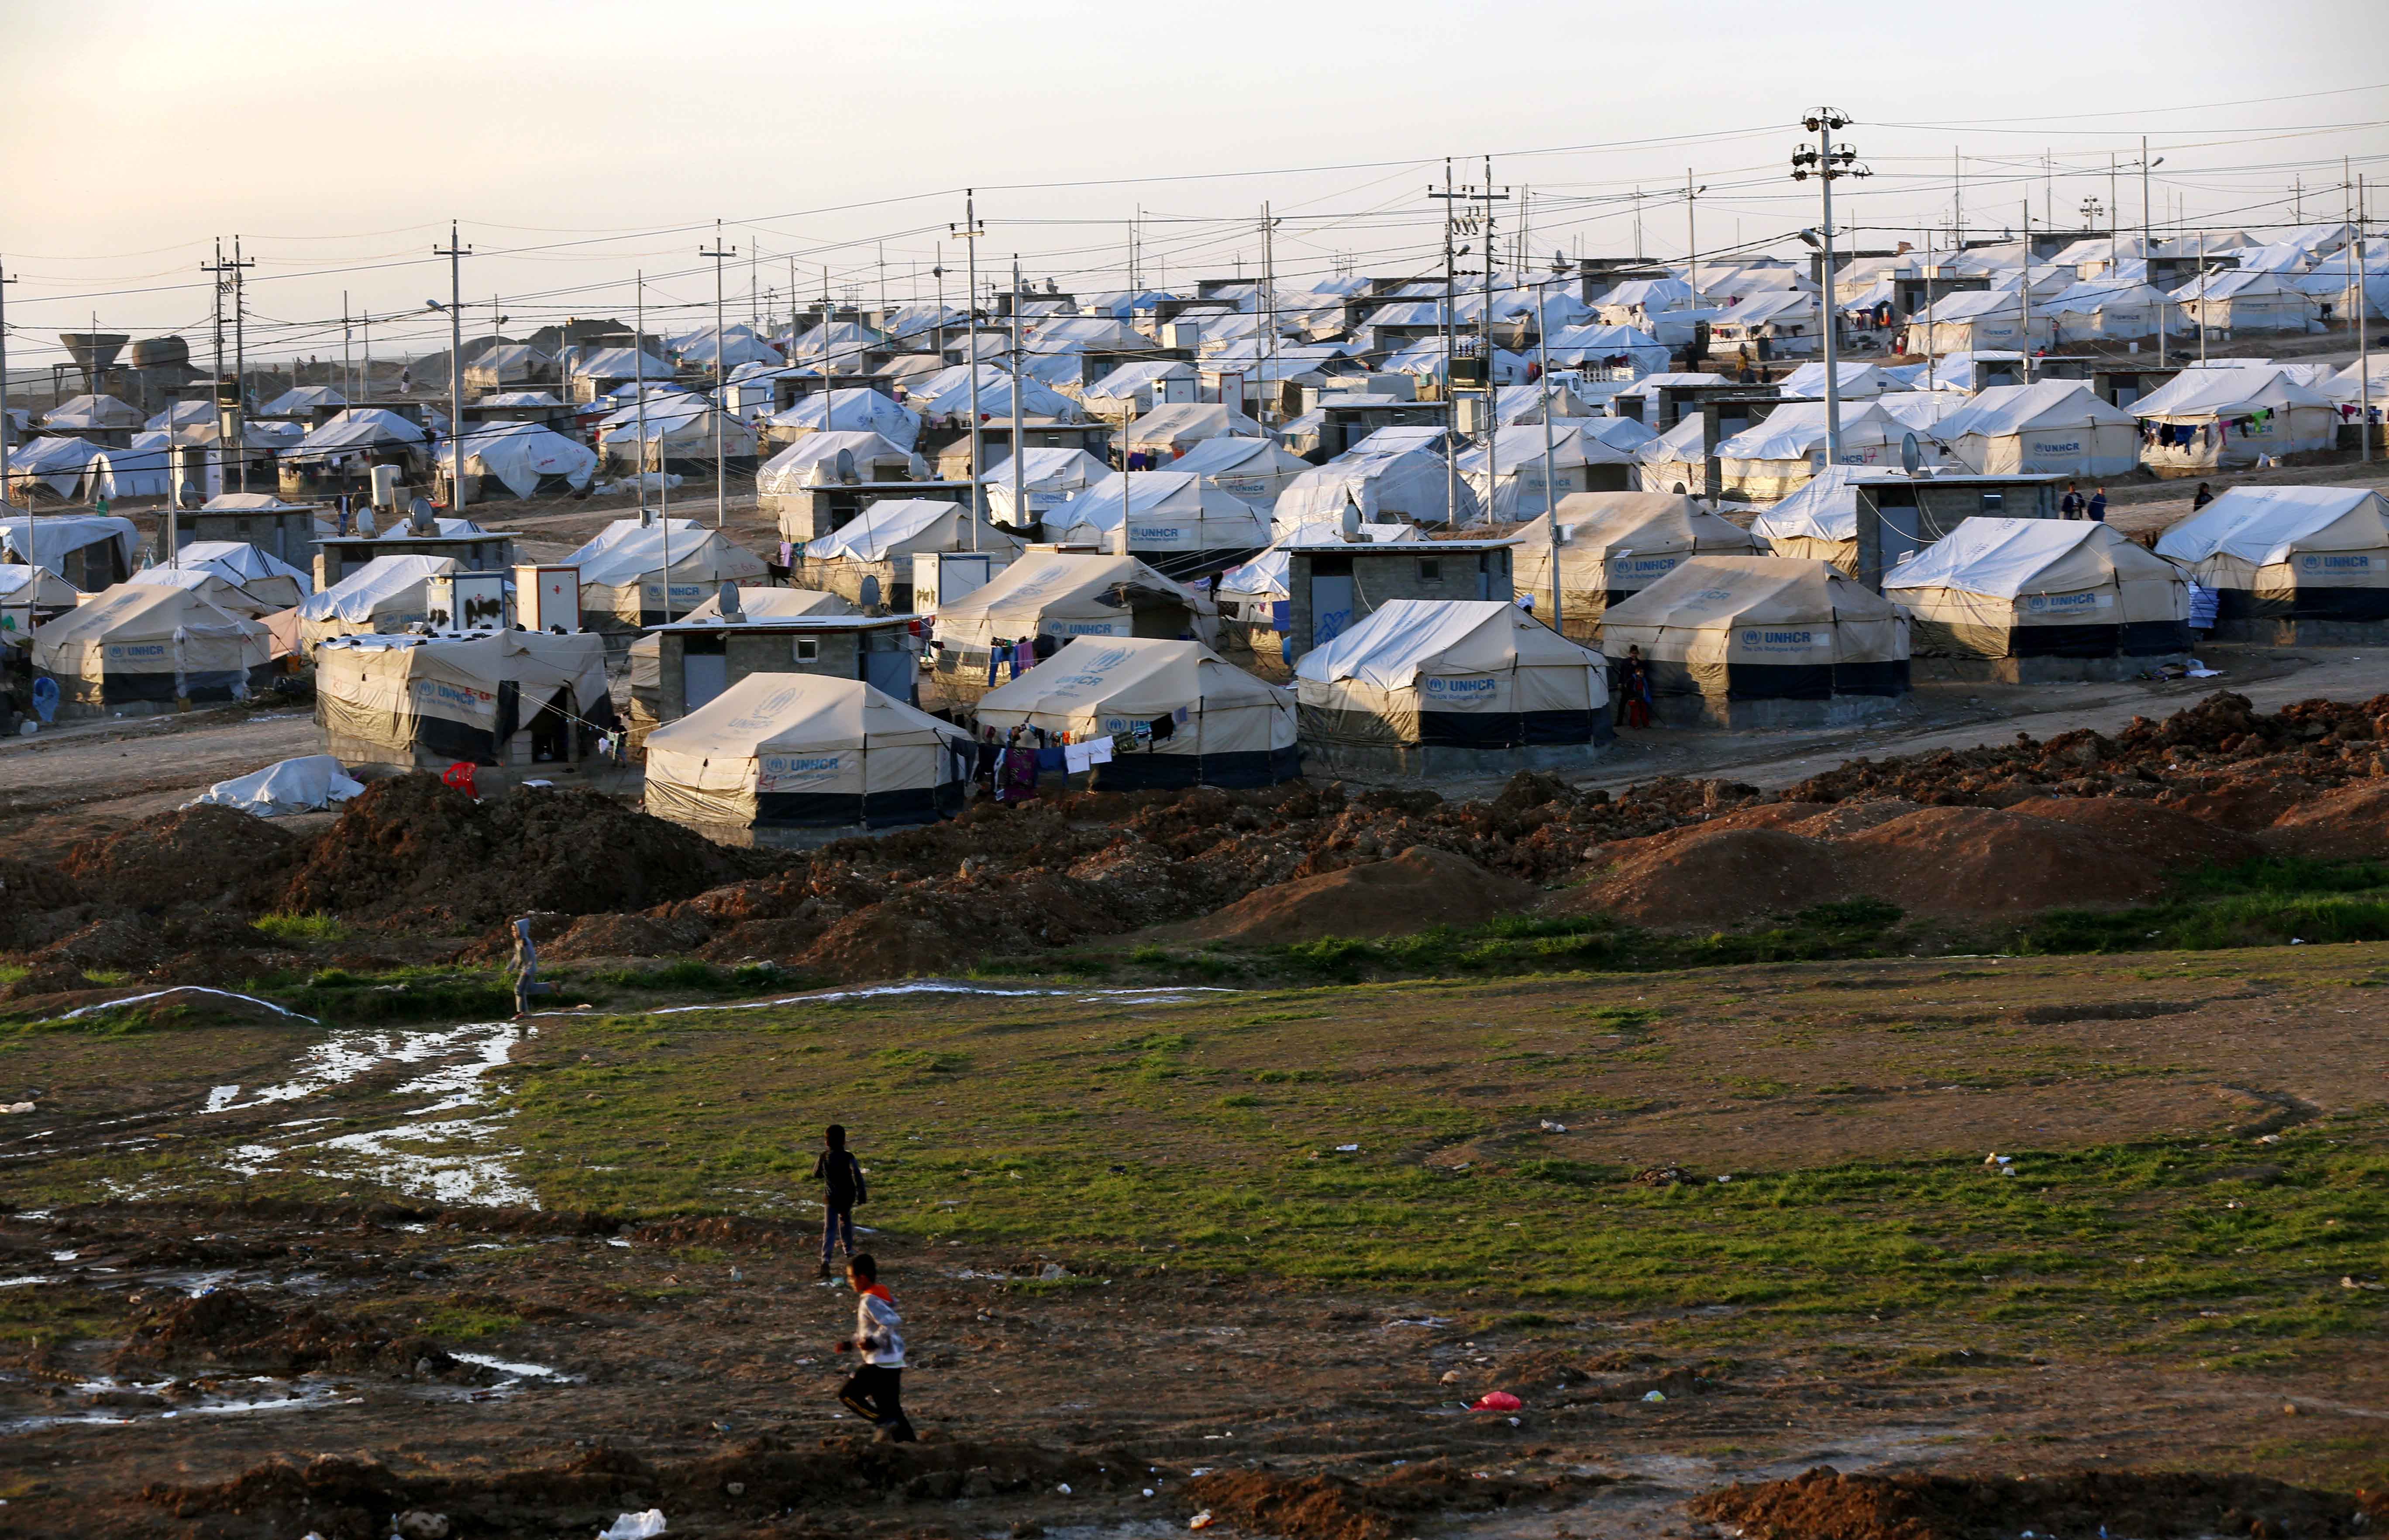 A view of a camp for displaced Iraqis in Khanke, a few kilometers (miles) from the Turkish border in Iraq's Dohuk province, January 25, 2015.